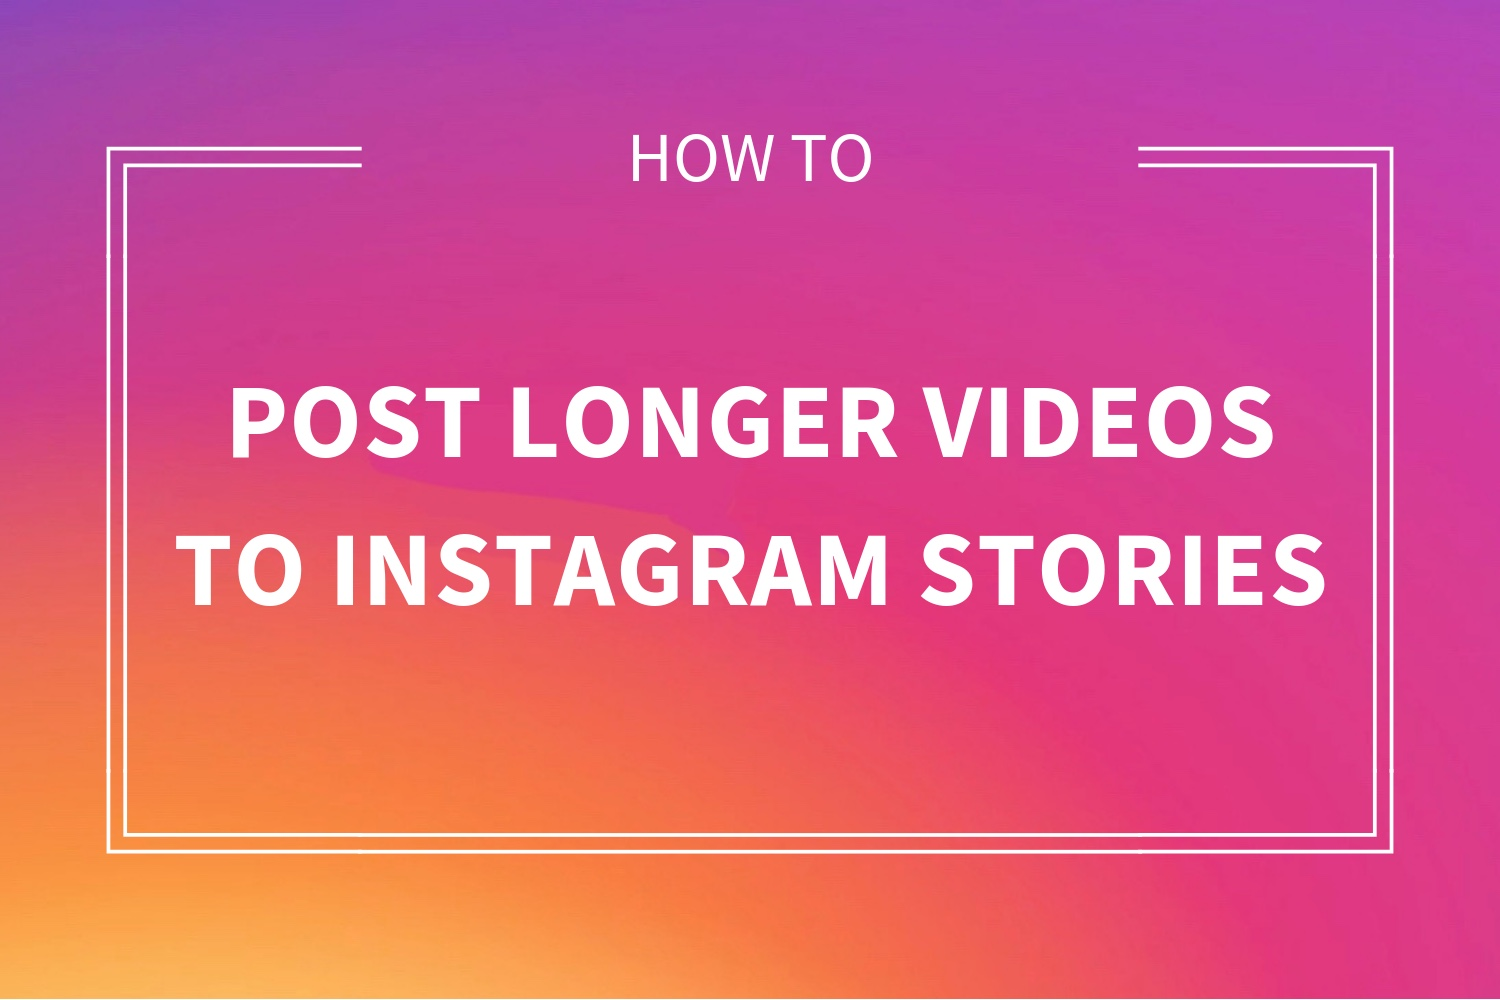 Post long videos to Instagram story